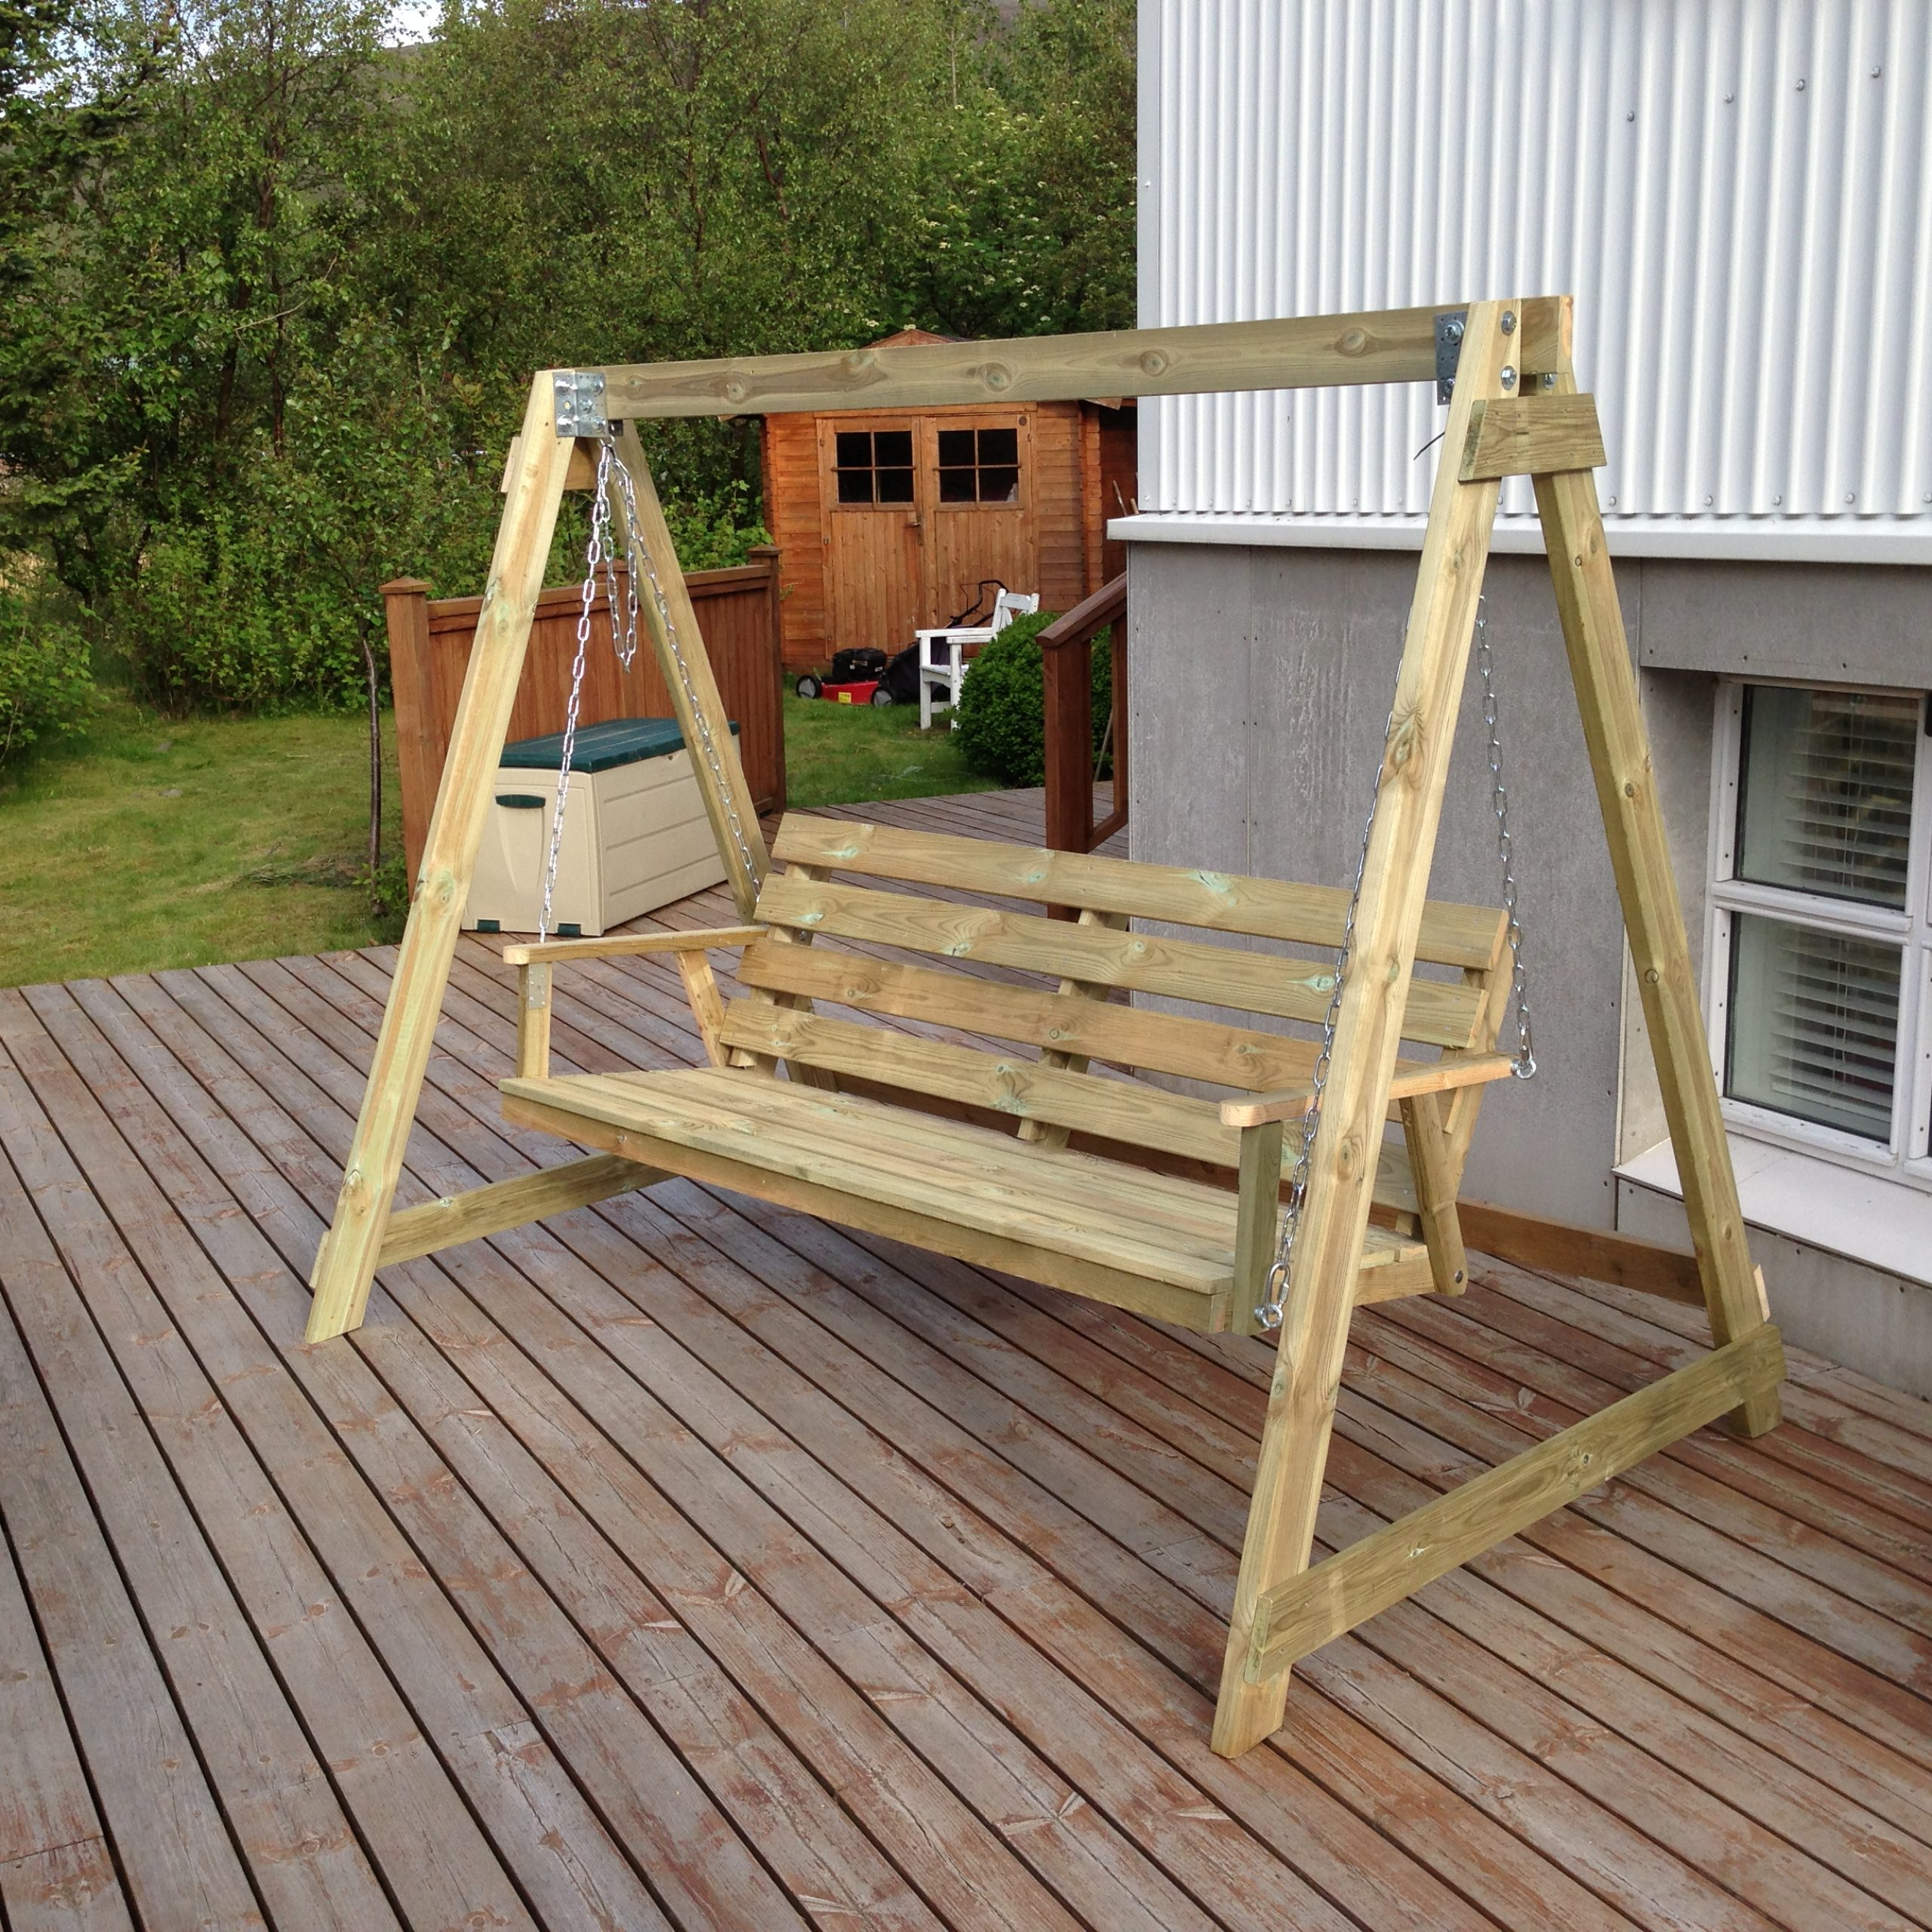 Well Known Bench Swing Plans Wooden Porch Swings Patio At Walmart With Within Patio Porch Swings With Stand (View 16 of 30)